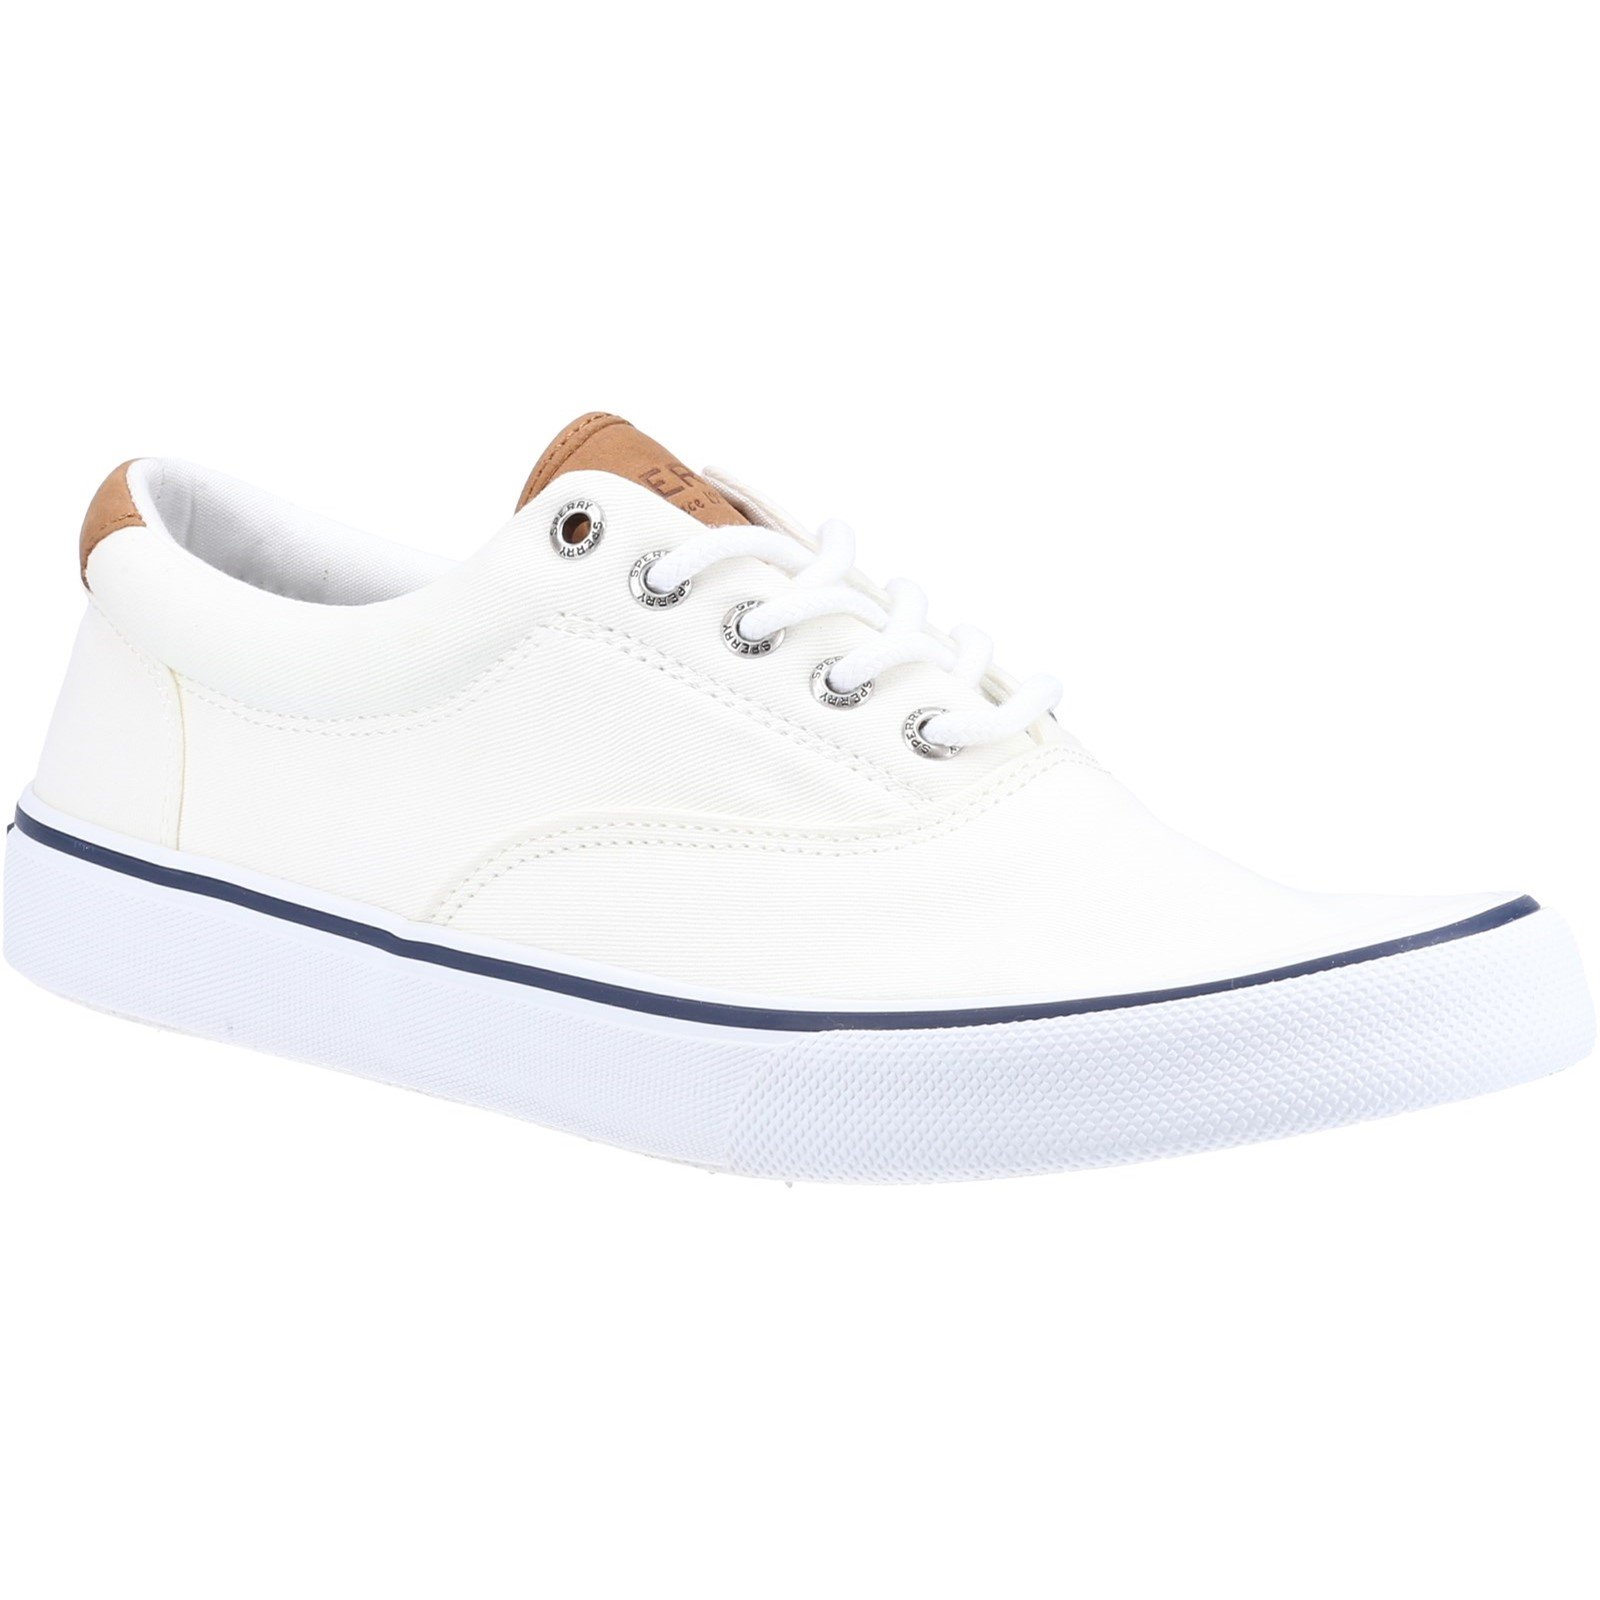 Sperry Men's Striper II CVO Canvas Trainers Various Colours 32397 - Salt Washed White 8